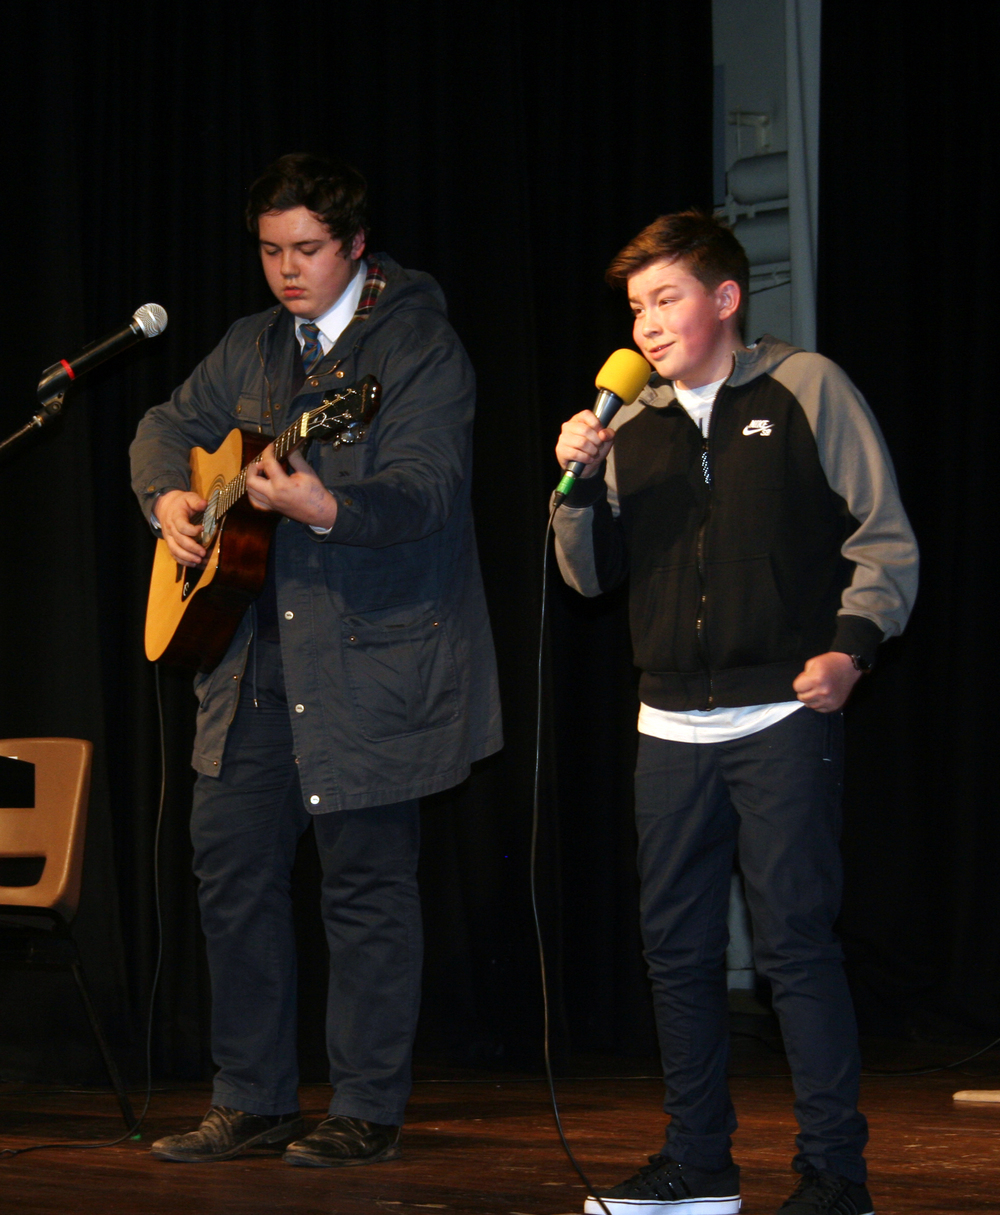 Year 7 have got talent 033.JPG